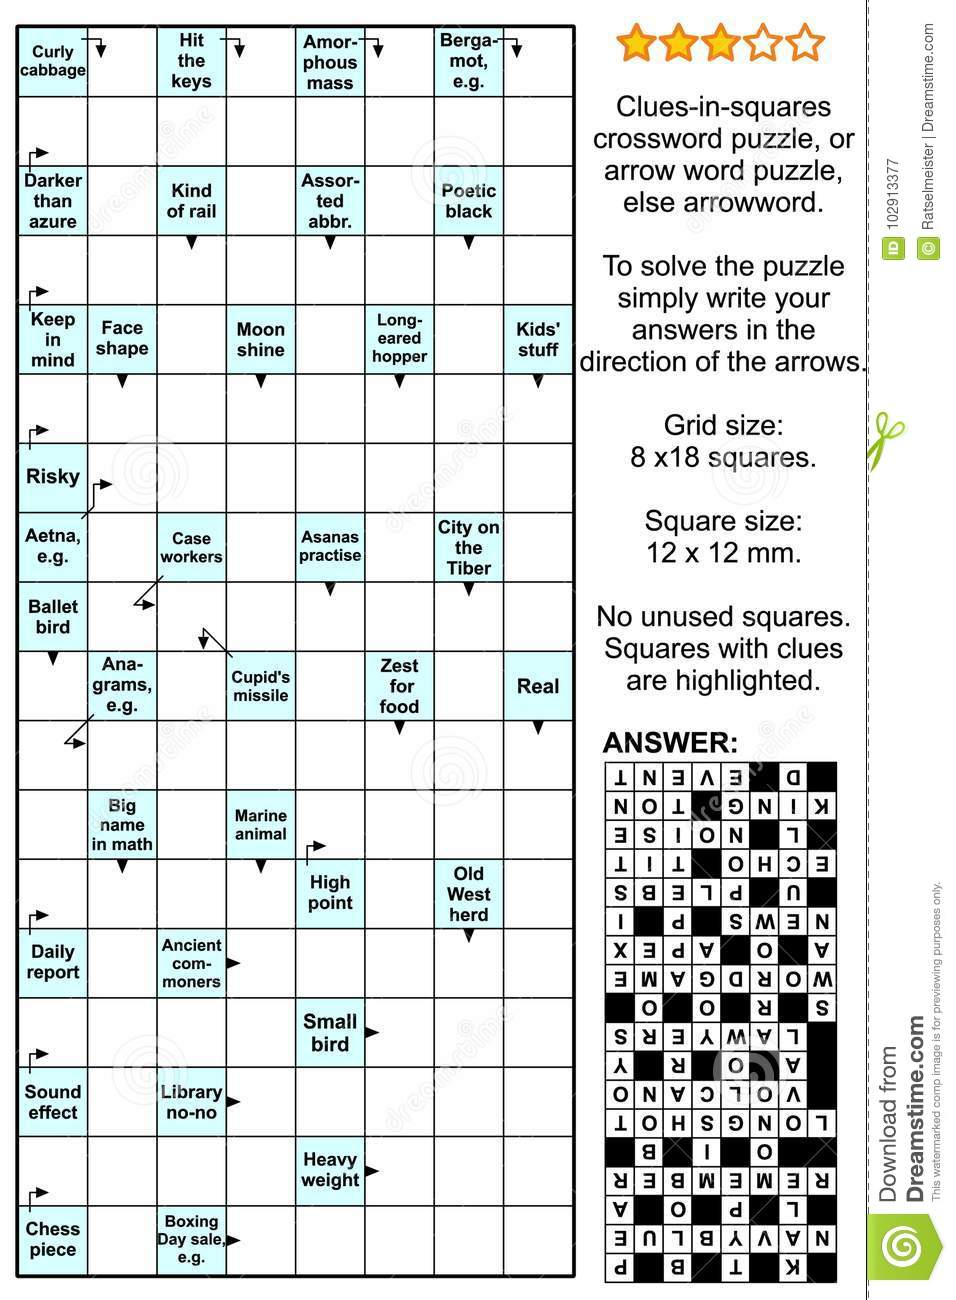 Arrowword Clues-in-squares, Scanword Crossword Puzzle Stock